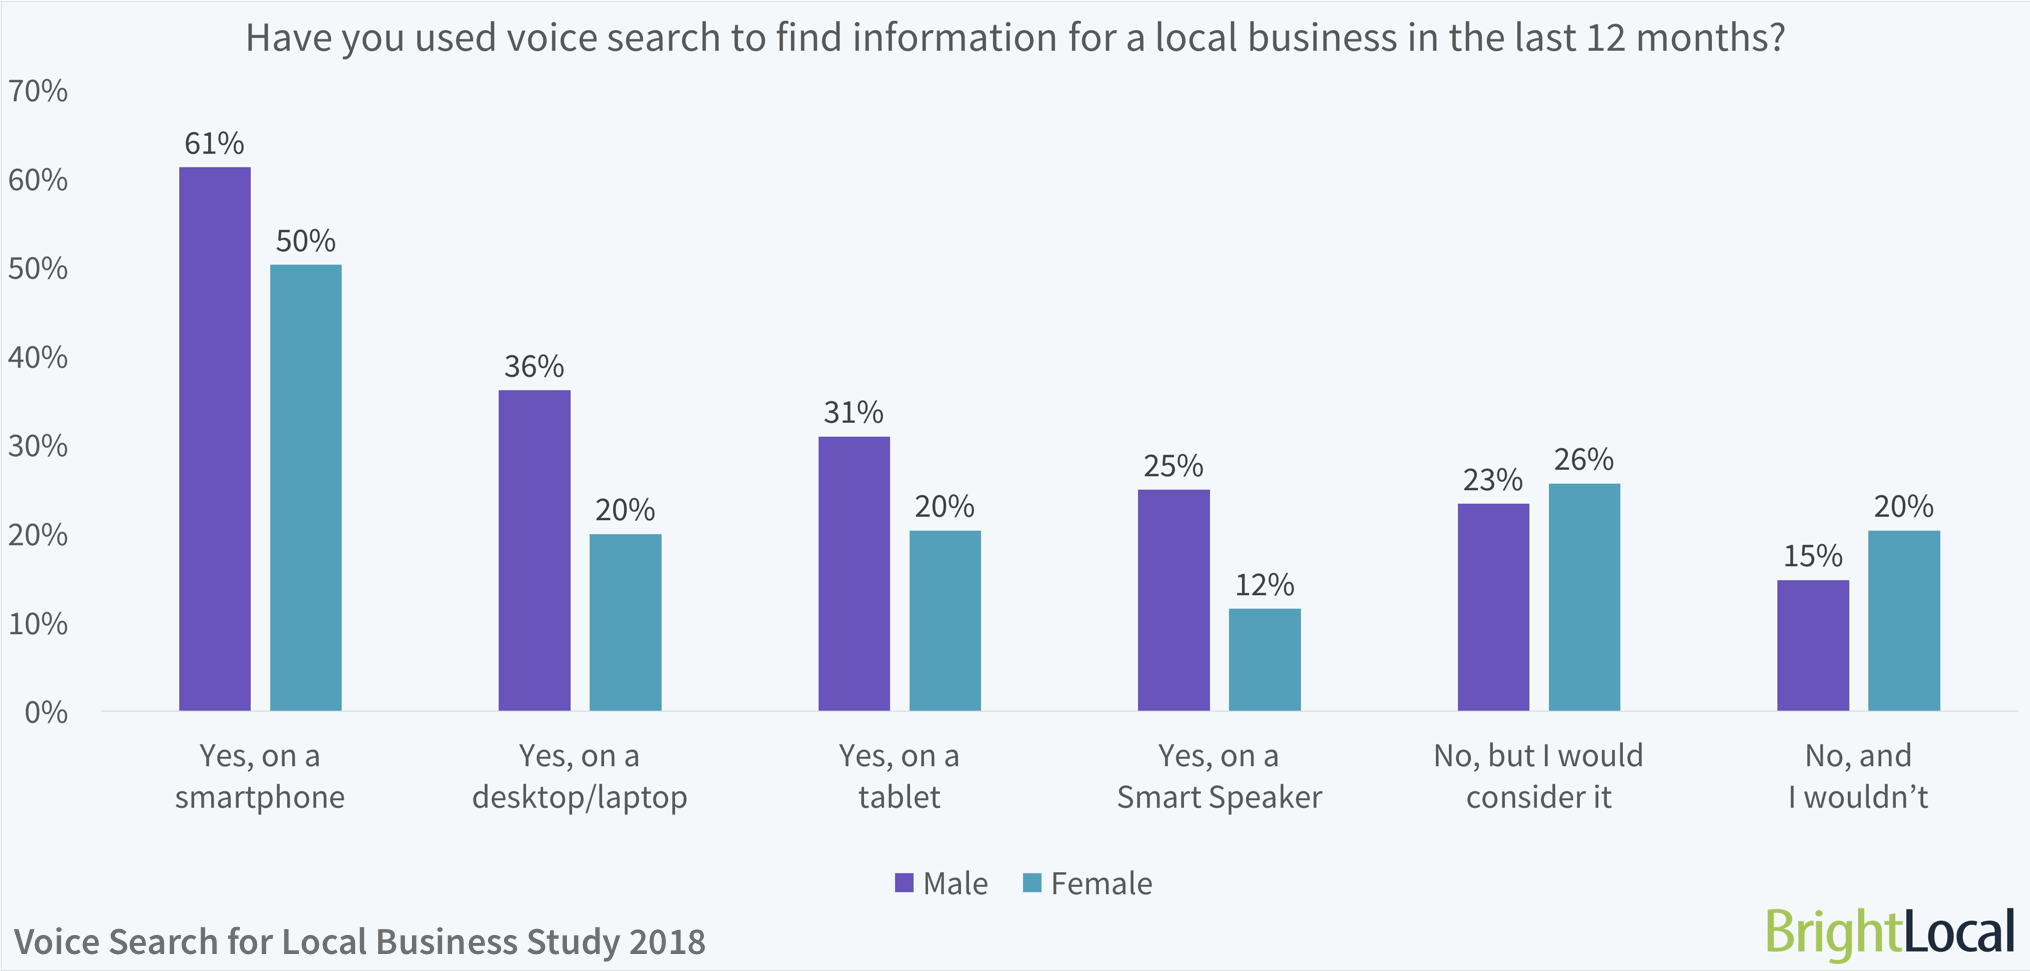 Gender Split: Have you used voice search to find information for a local business in the last 12 months? | BrightLocal Voice Search for Local Business Study